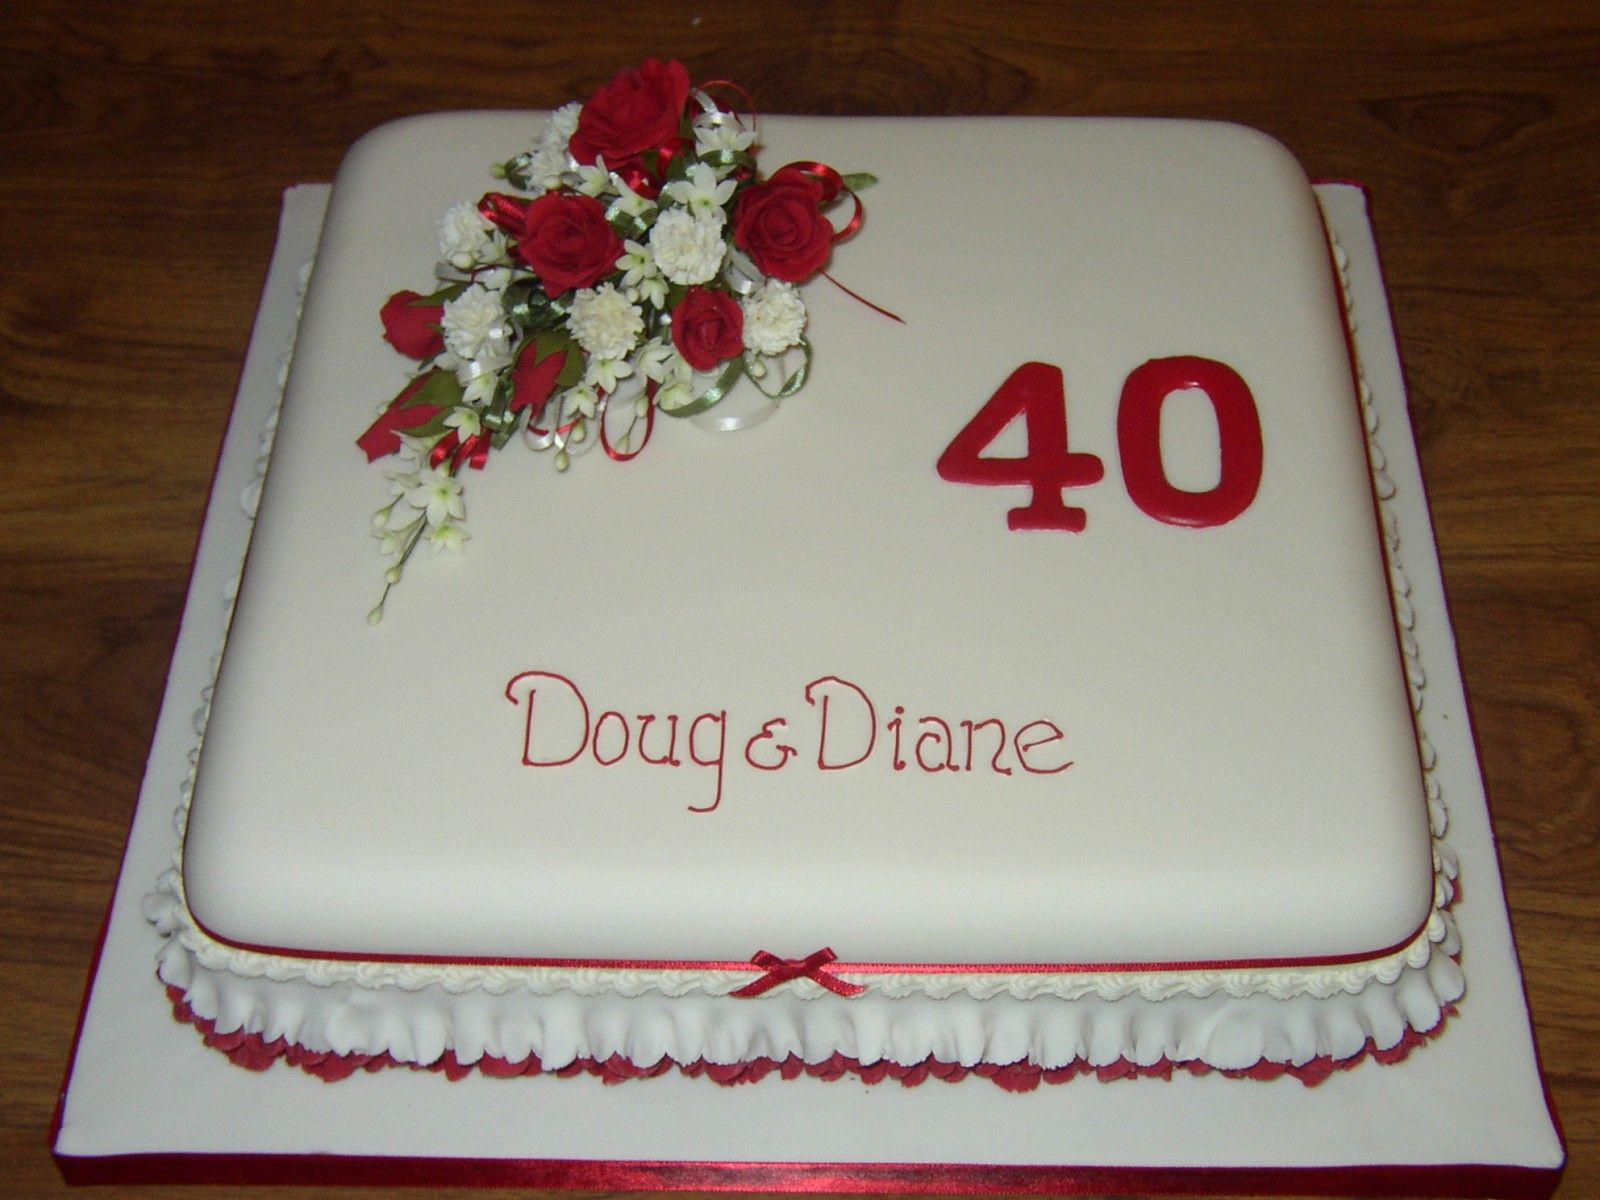 Retro Anniversary Cakes Images 40th Wedding Cakes40th Cake With Red